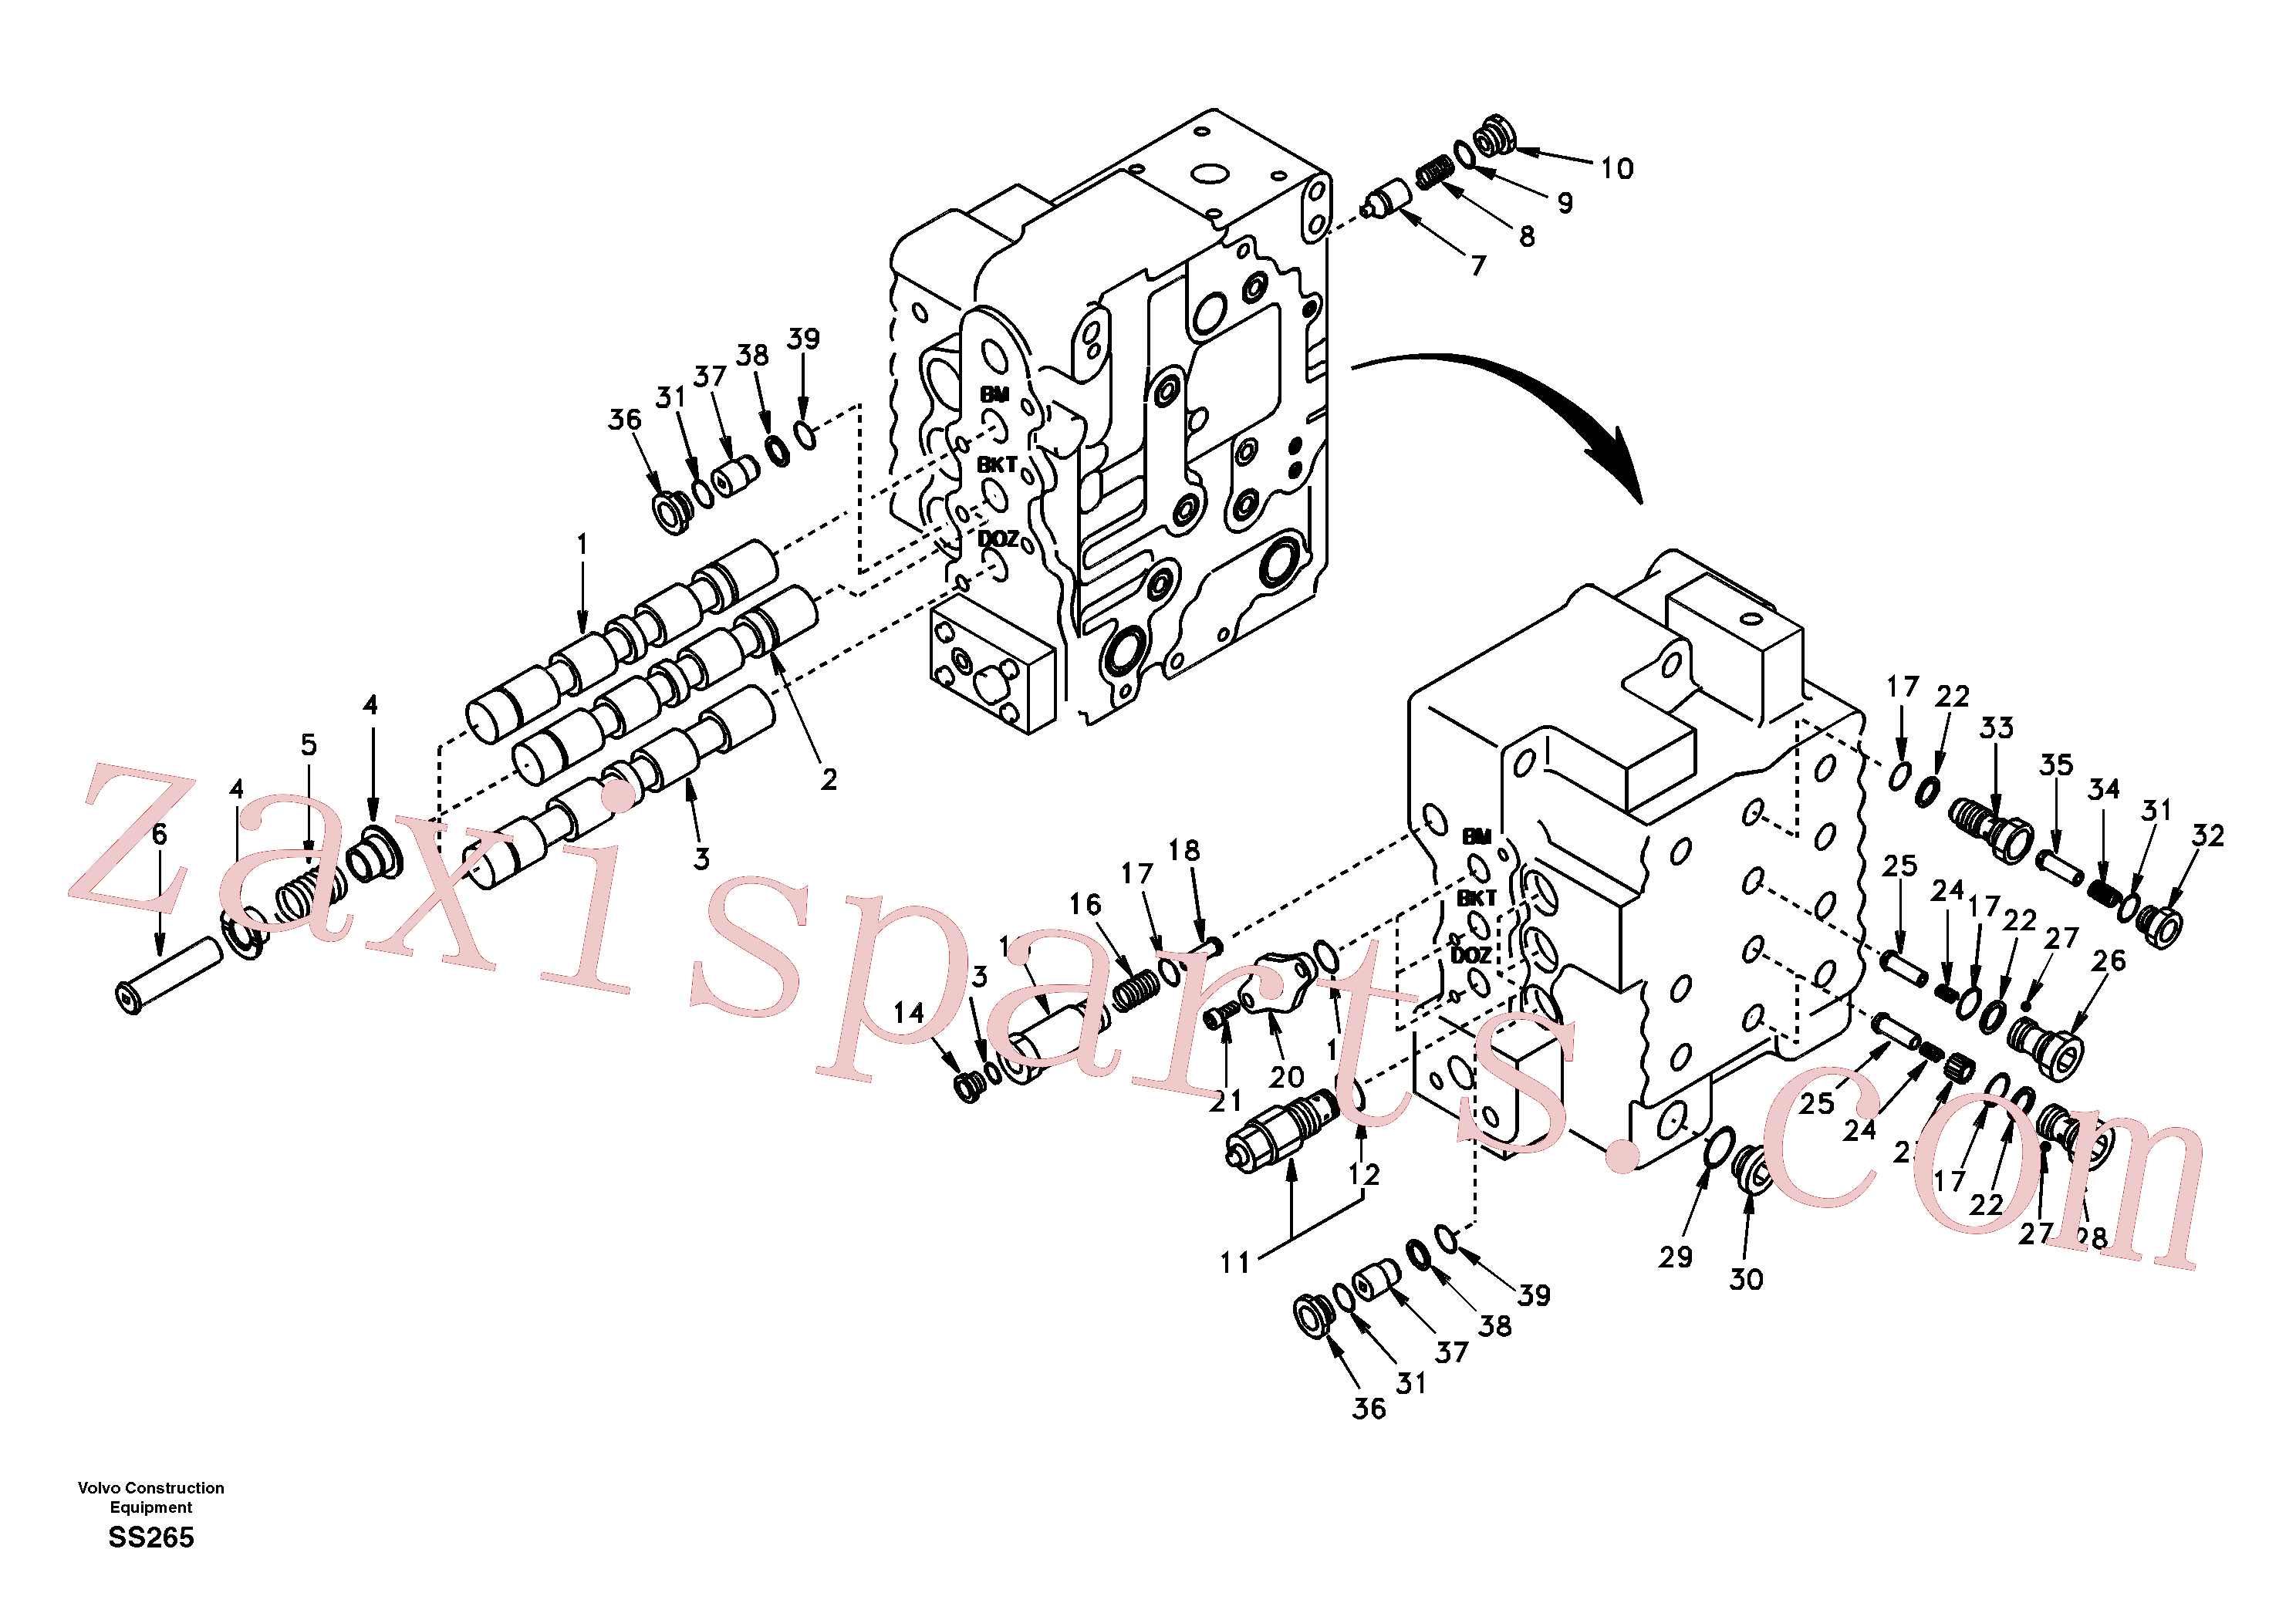 SA8230-11810 for Volvo Main control valve, boom and bucket and travel Rh(SS265 assembly)